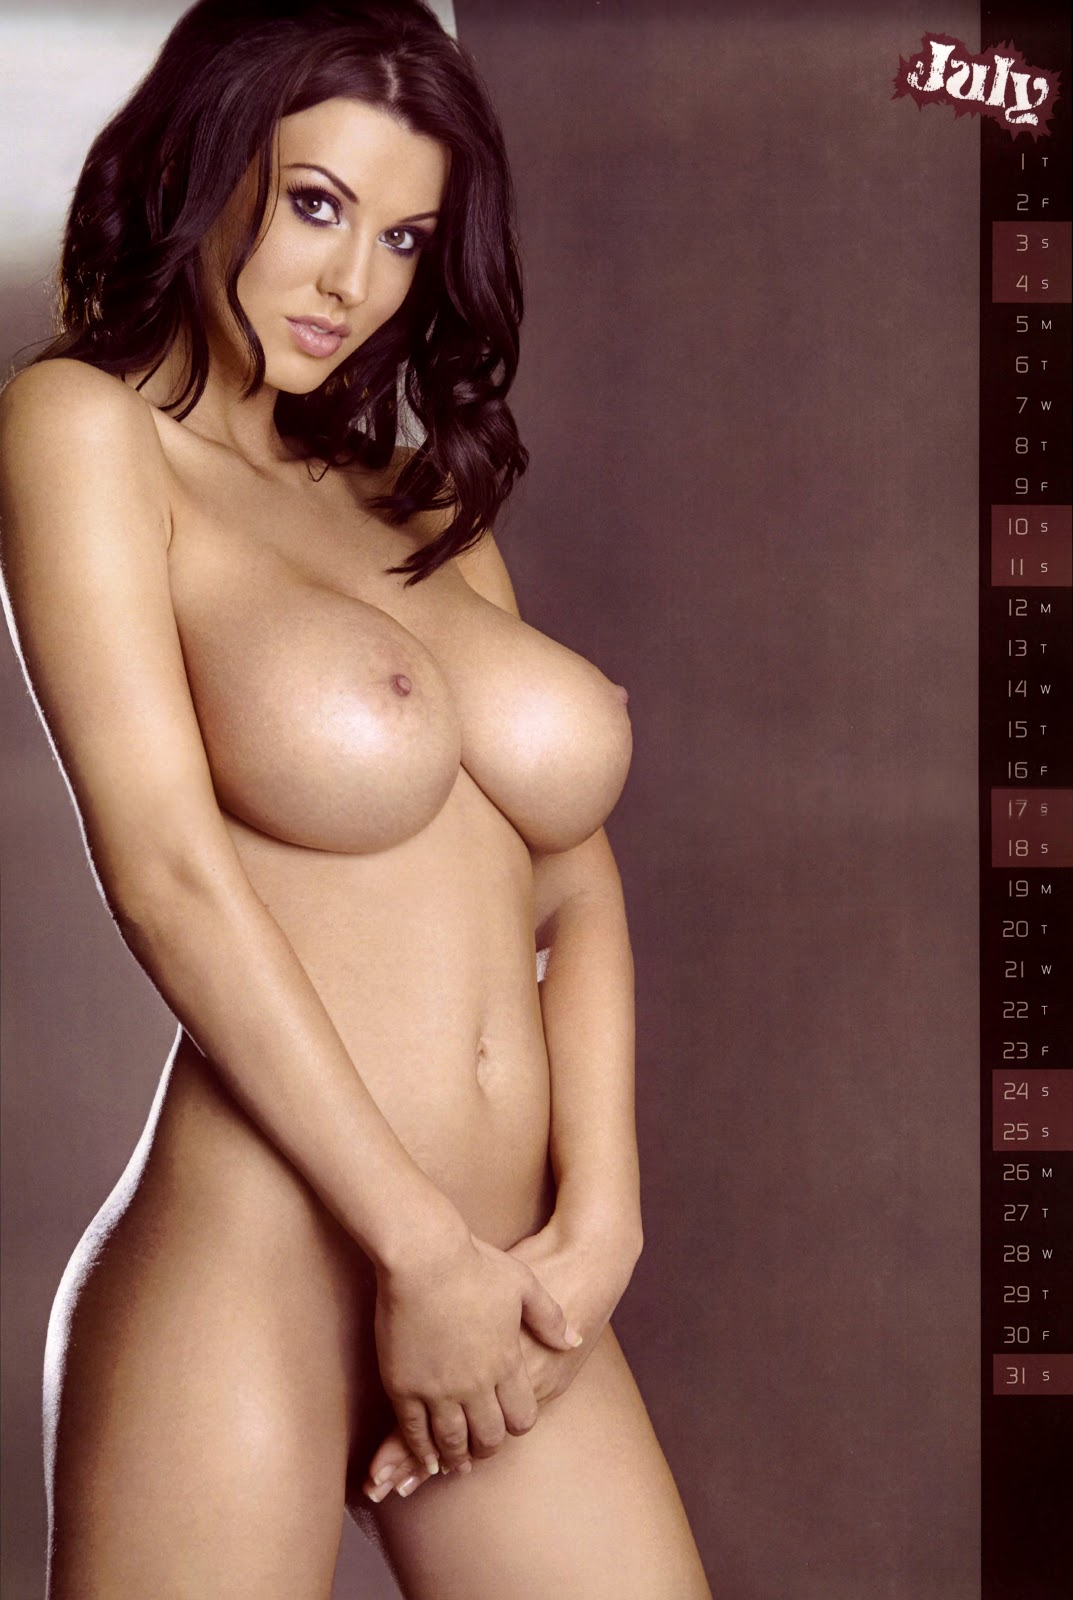 Alice goodwin for nuts 10